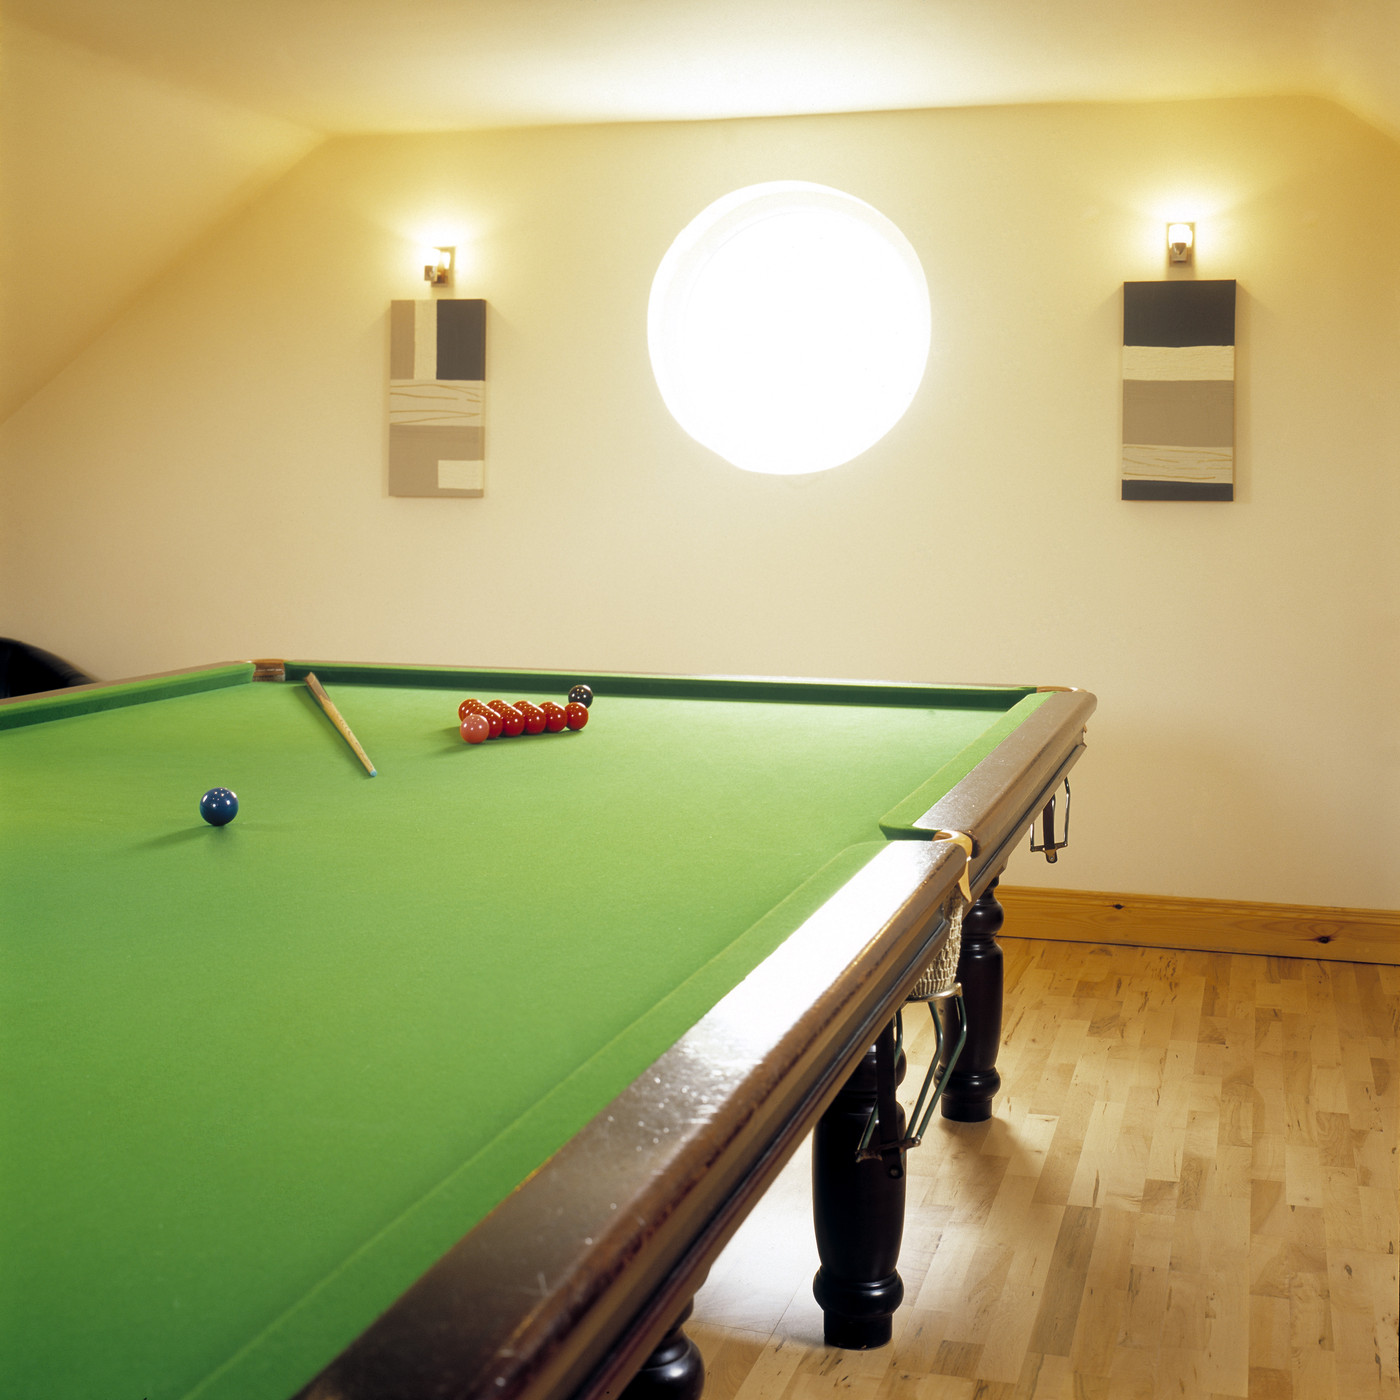 Snooker Table Photos, Design, Ideas, Remodel, and Decor - Lonny